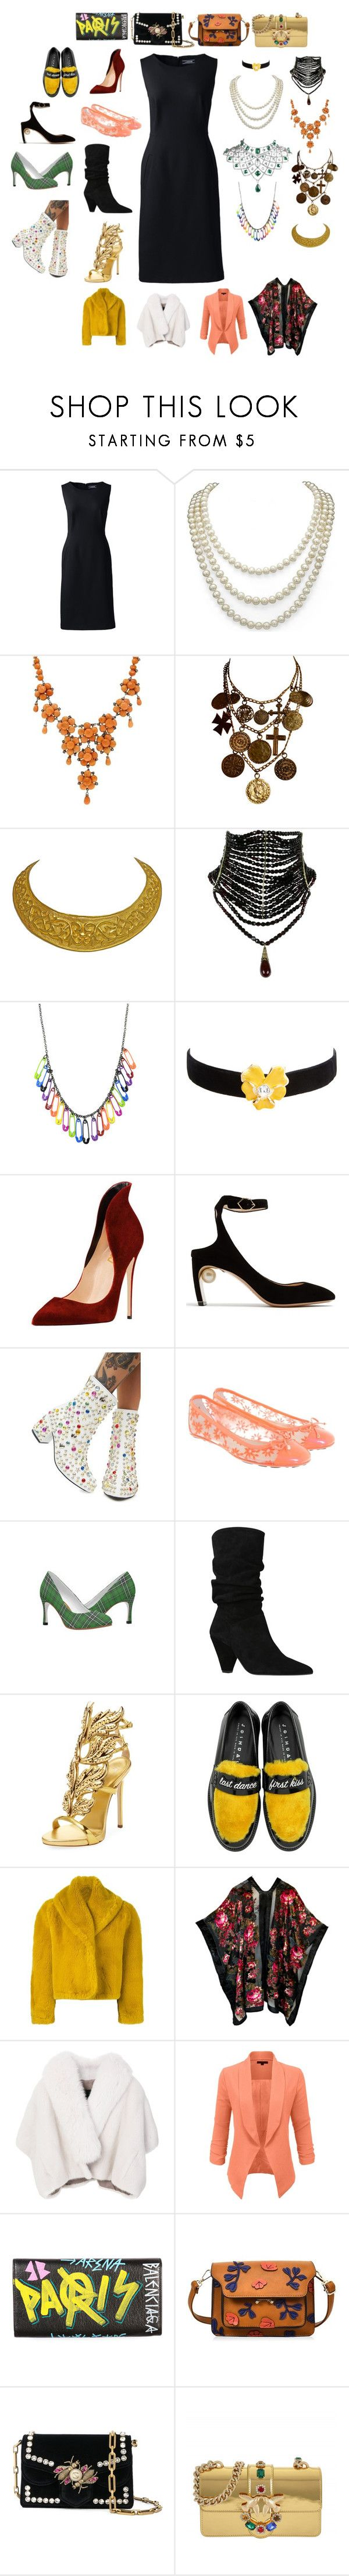 """""""very versatile"""" by rewolf71 ❤ liked on Polyvore featuring Lands' End, DaVonna, Luise, Yves Saint Laurent, Fabergé, Kenneth Jay Lane, Nicholas Kirkwood, Jimmy Choo, Carvela and Giuseppe Zanotti"""